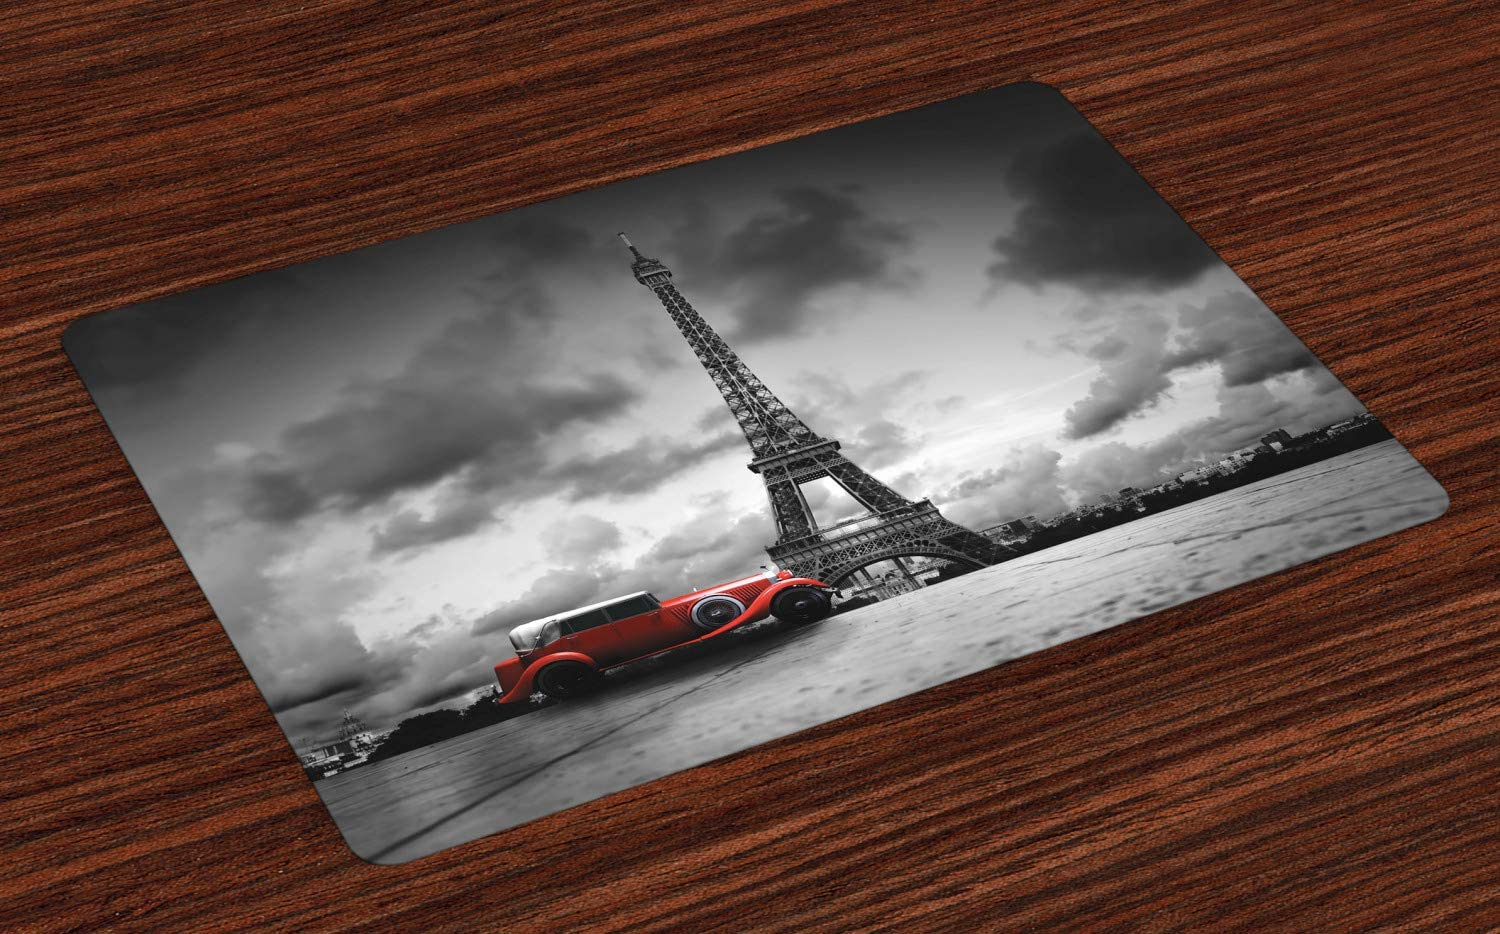 Ambesonne Eiffel Tower Place Mats Set of 4, Image of Eiffel Tower Paris France Vintage Car Street Dark Clouds, Washable Fabric Placemats for Dining Room Kitchen Table Decor, Black White Red